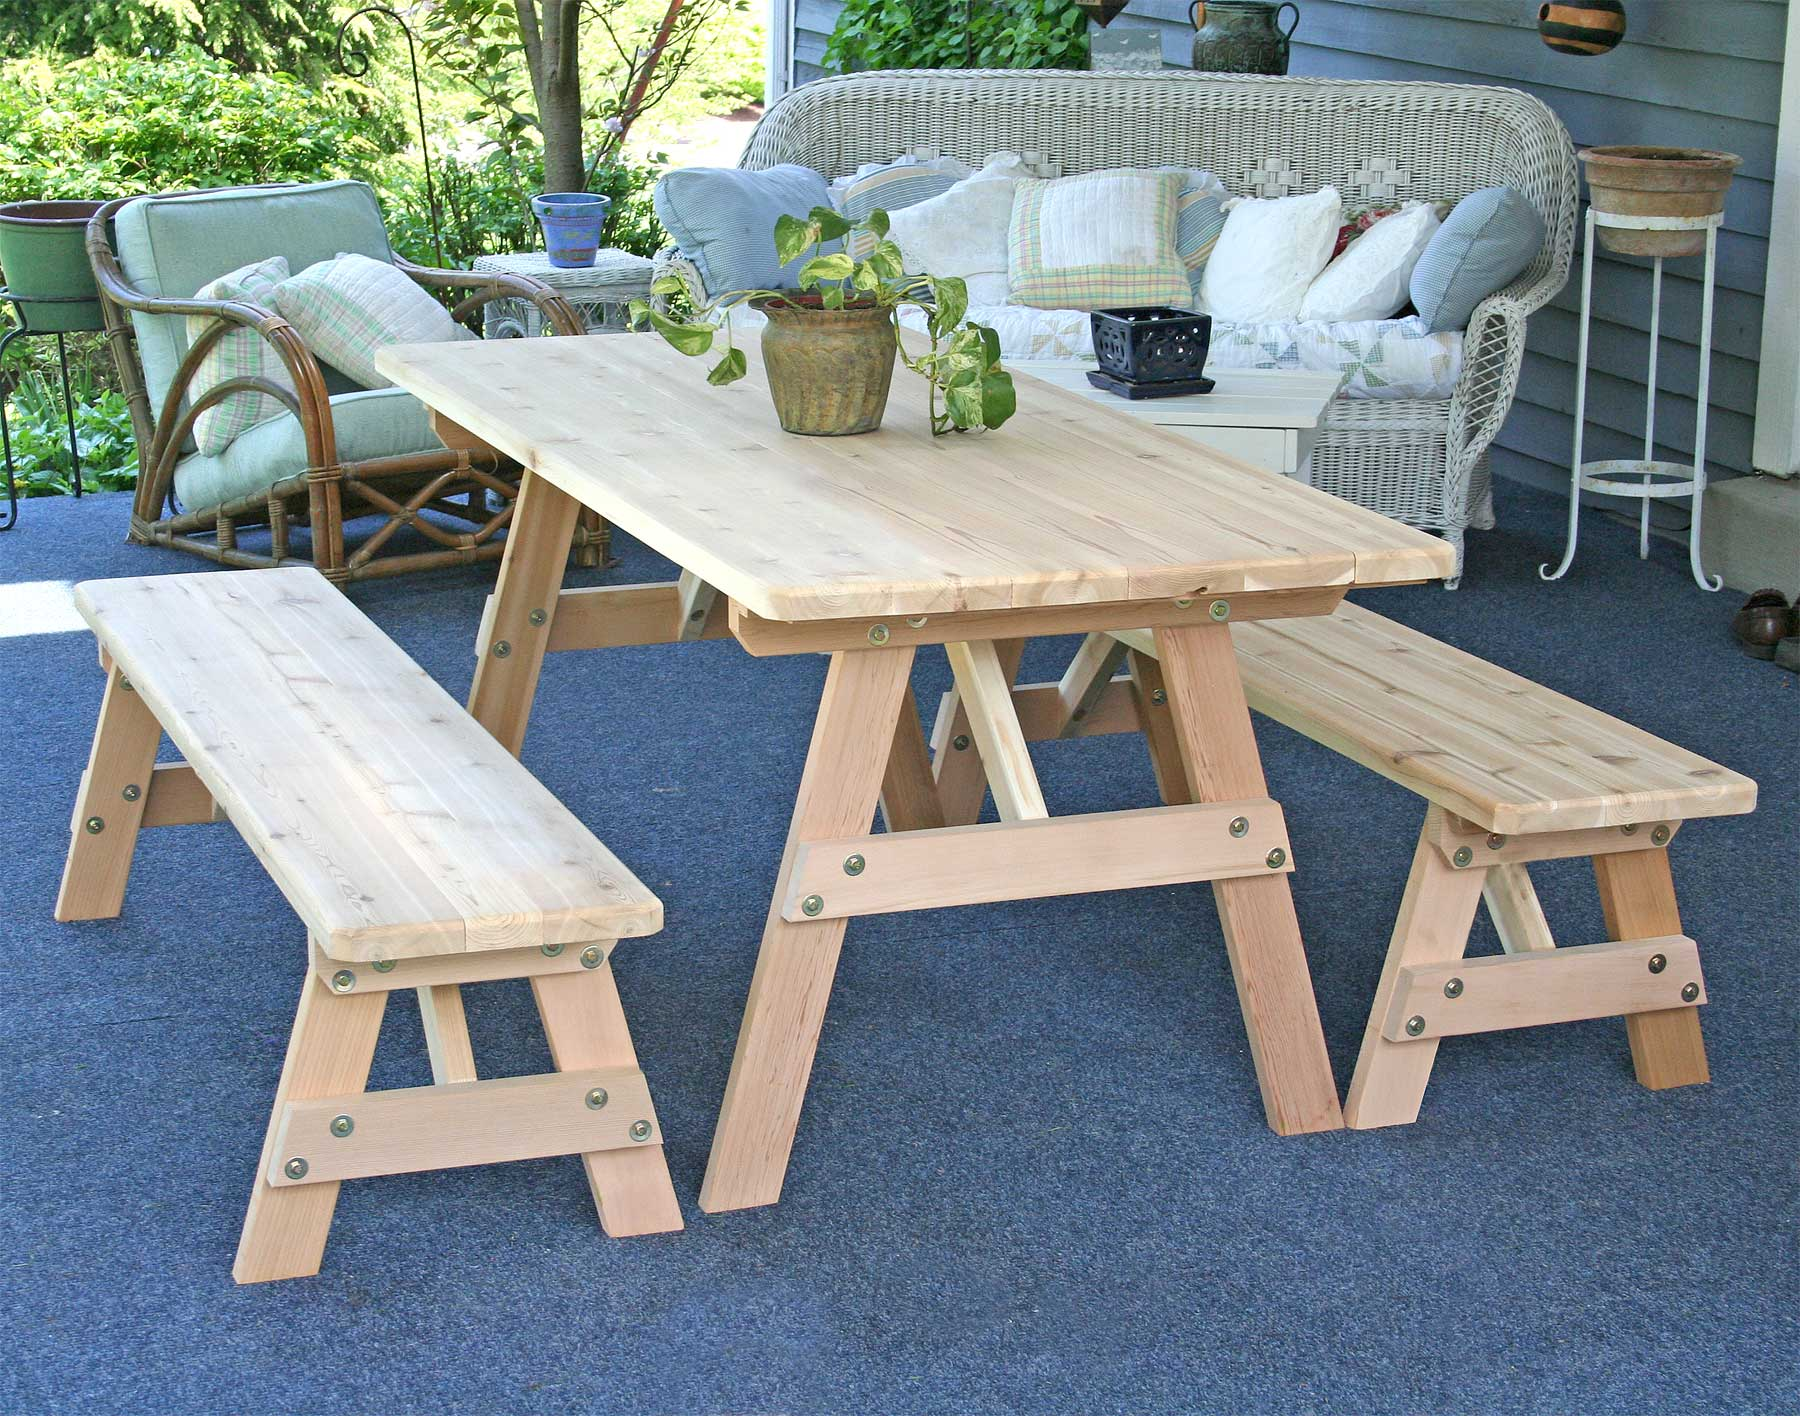 Red Cedar Picnic Table WBenches - Picnic table with removable benches